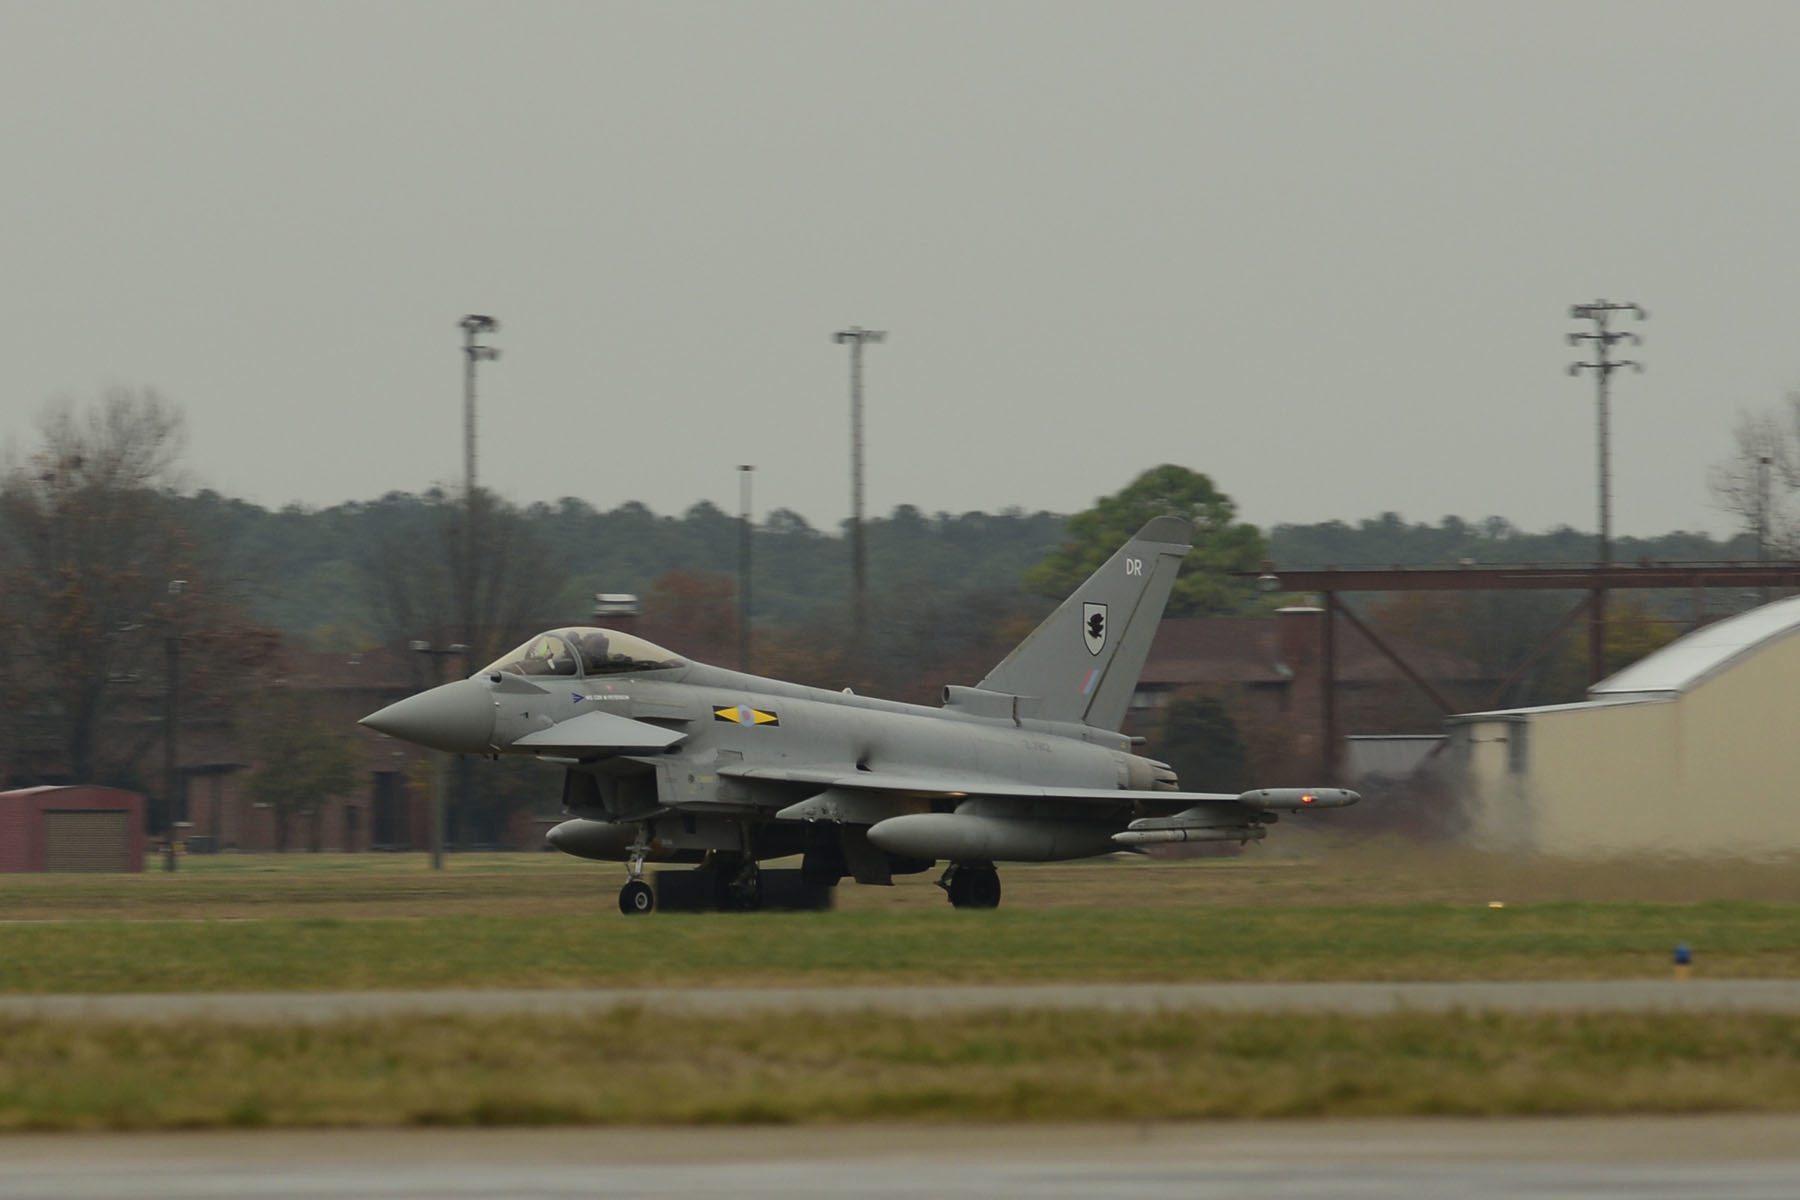 A British Royal Air Force (RAF) Typhoon lands at Langley Air Force Base, Va., Dec. 3, 2015. The inaugural Trilateral Exercise will display the capabilities of the F-22 Raptor, RAF Typhoon and the French air force Rafale. (U.S. Air Force photo by Airman 1st Class Derek Seifert)